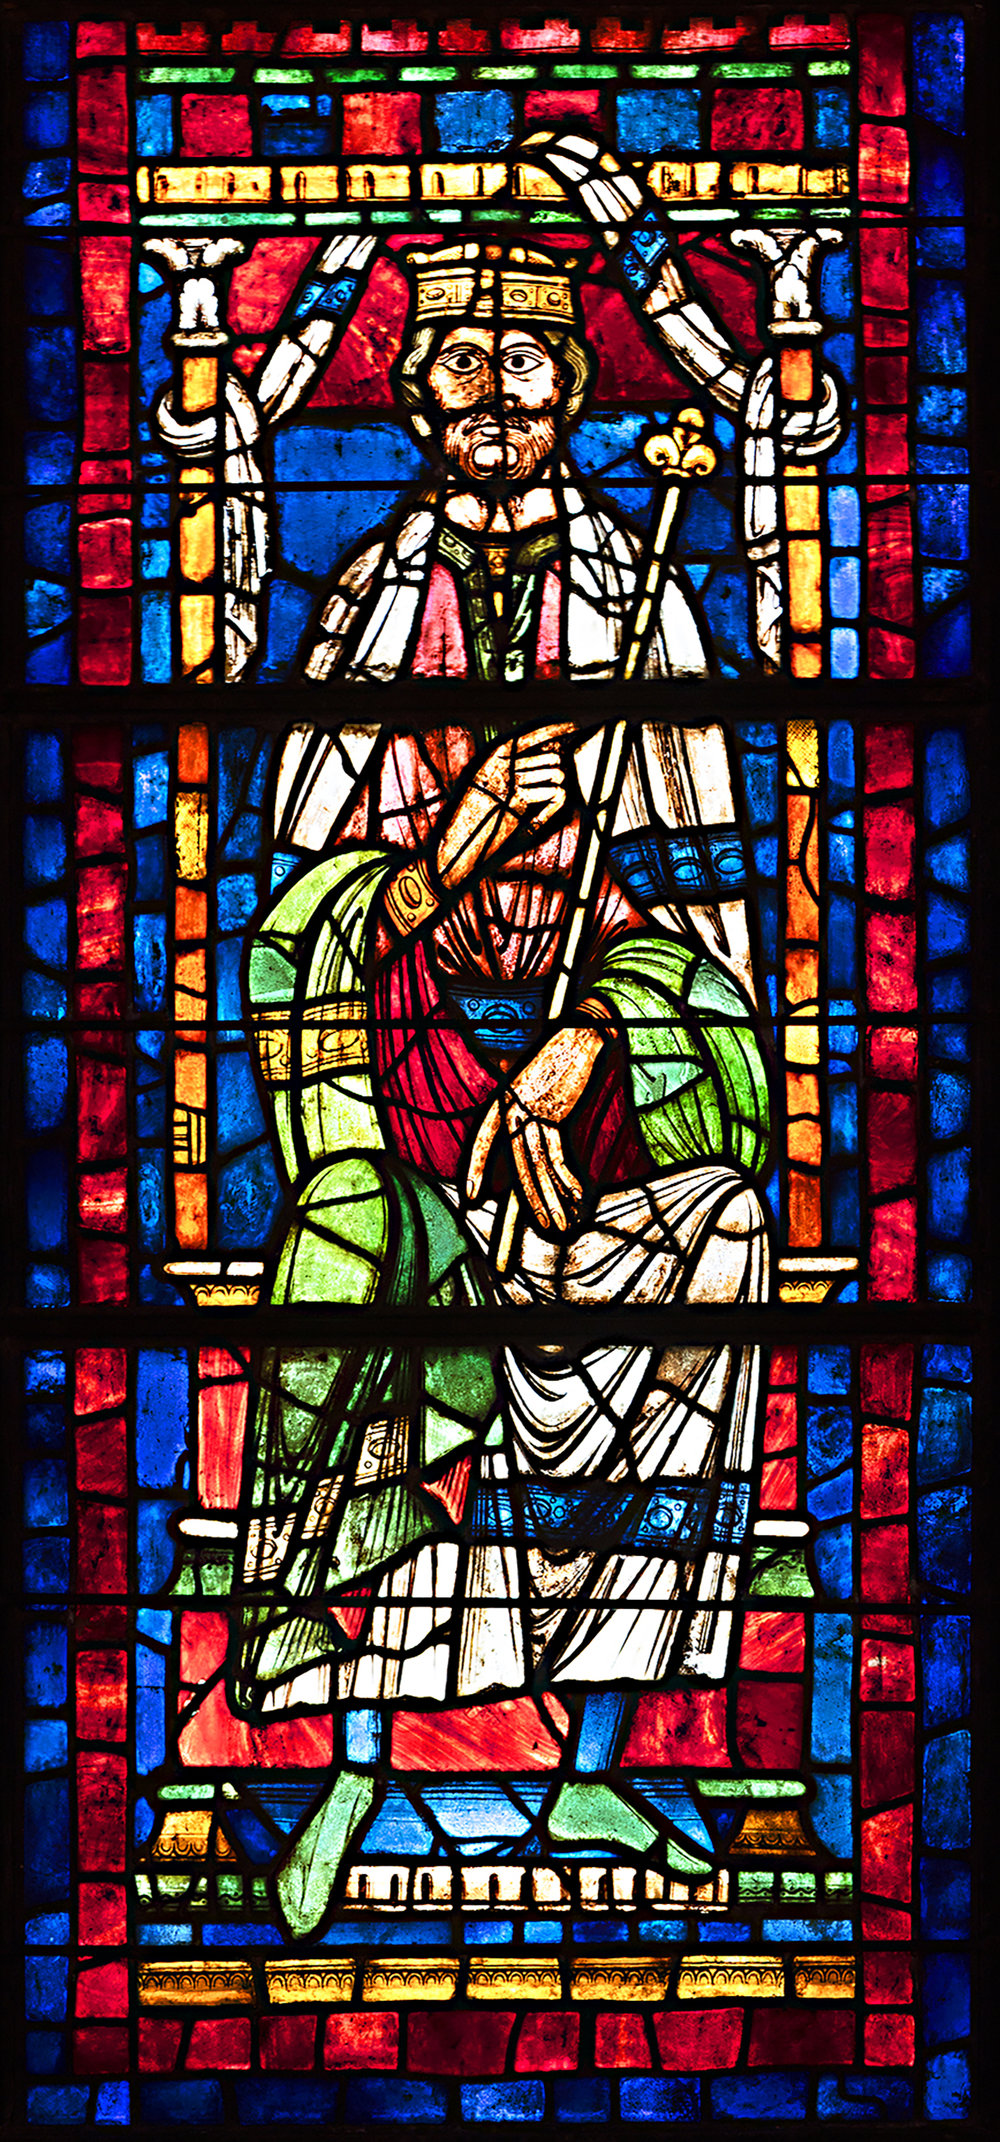 Figure 1: Seated King, stained-glass panel from the Church of Saint-Yved, Braine, France, c. 1190-1200 (03.SG.234).